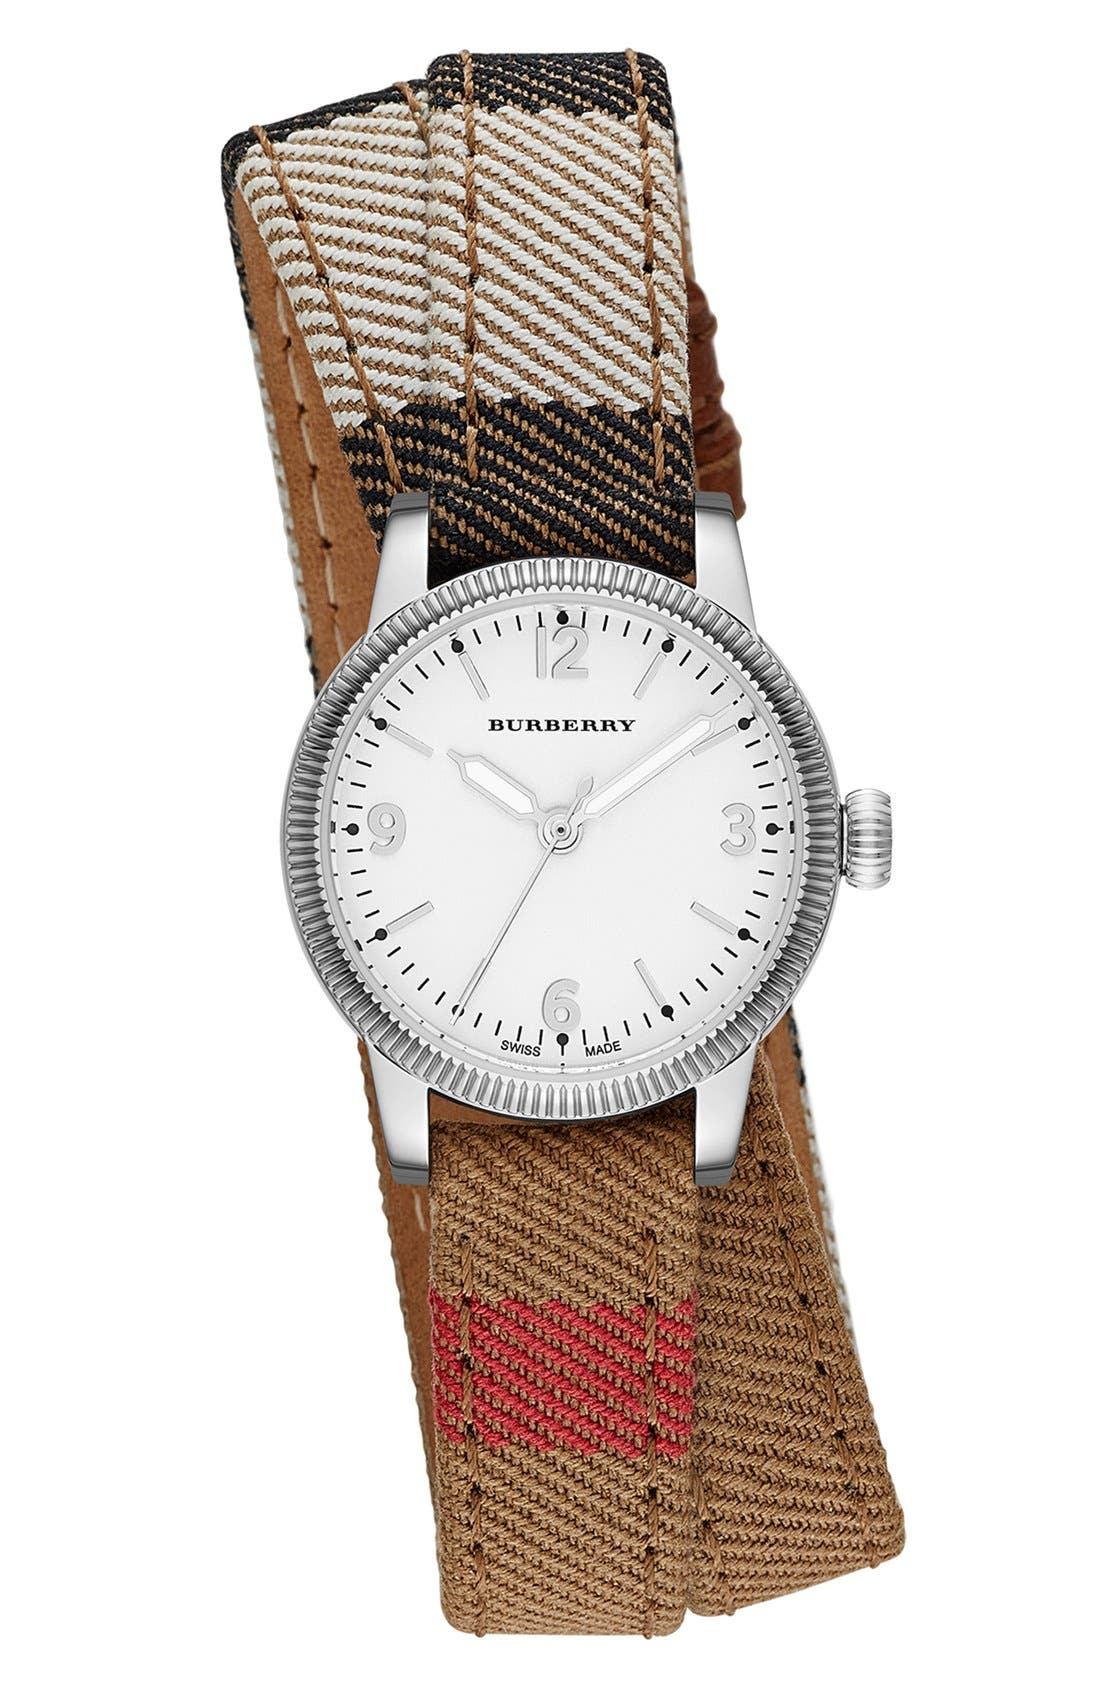 Main Image - Burberry 'Utilitarian' Round Check Wrap Watch, 30mm